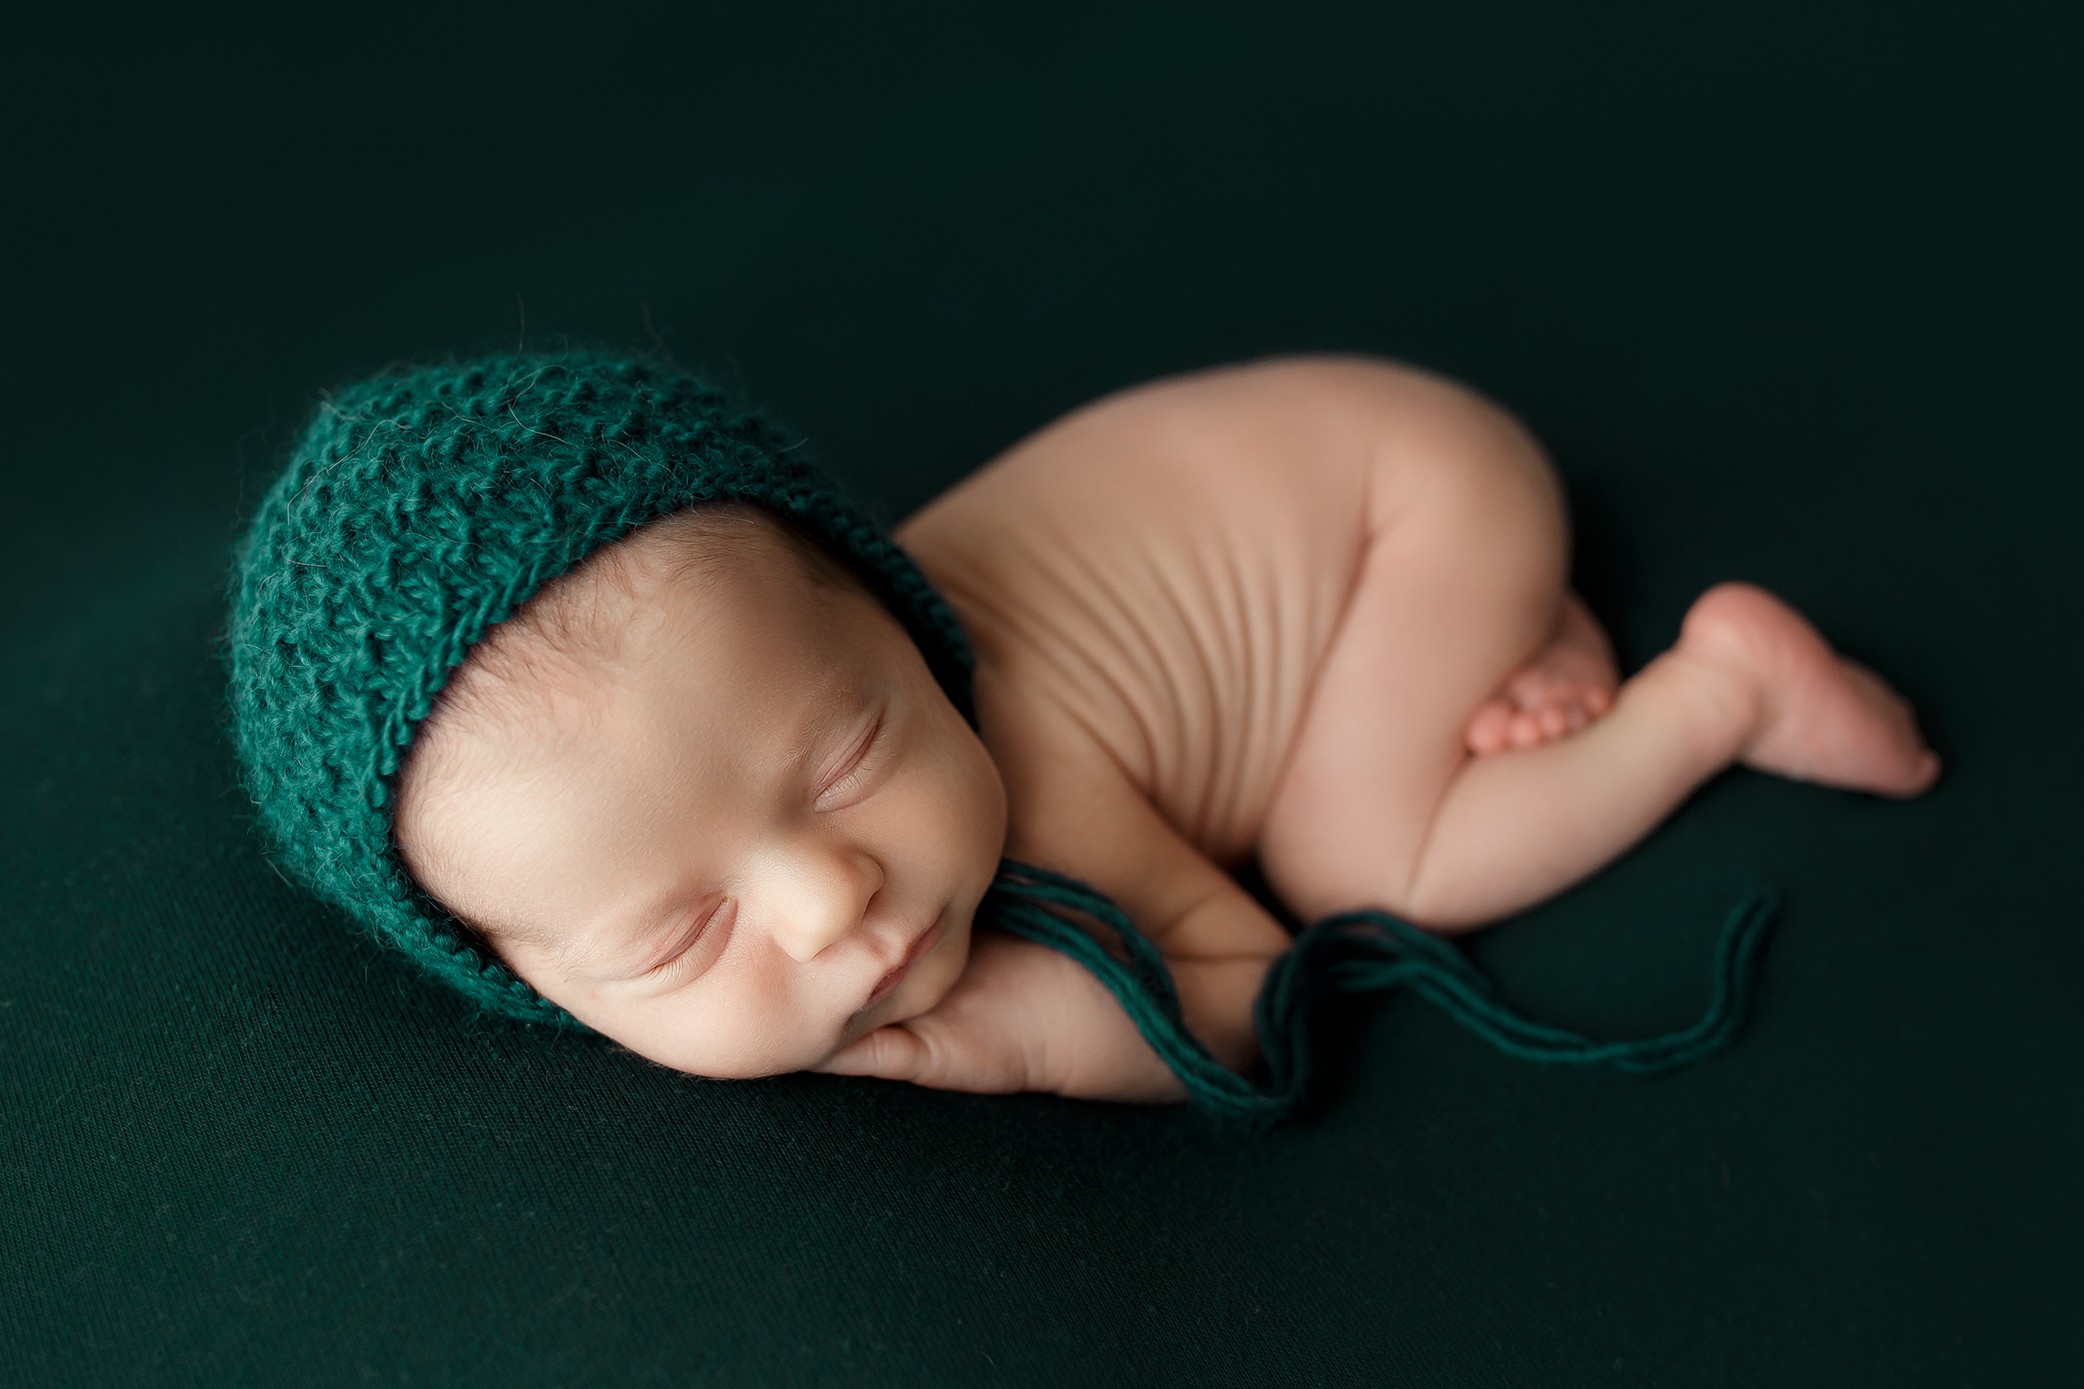 William-Liam-George-Brown-Newborn-Session-2516.jpg